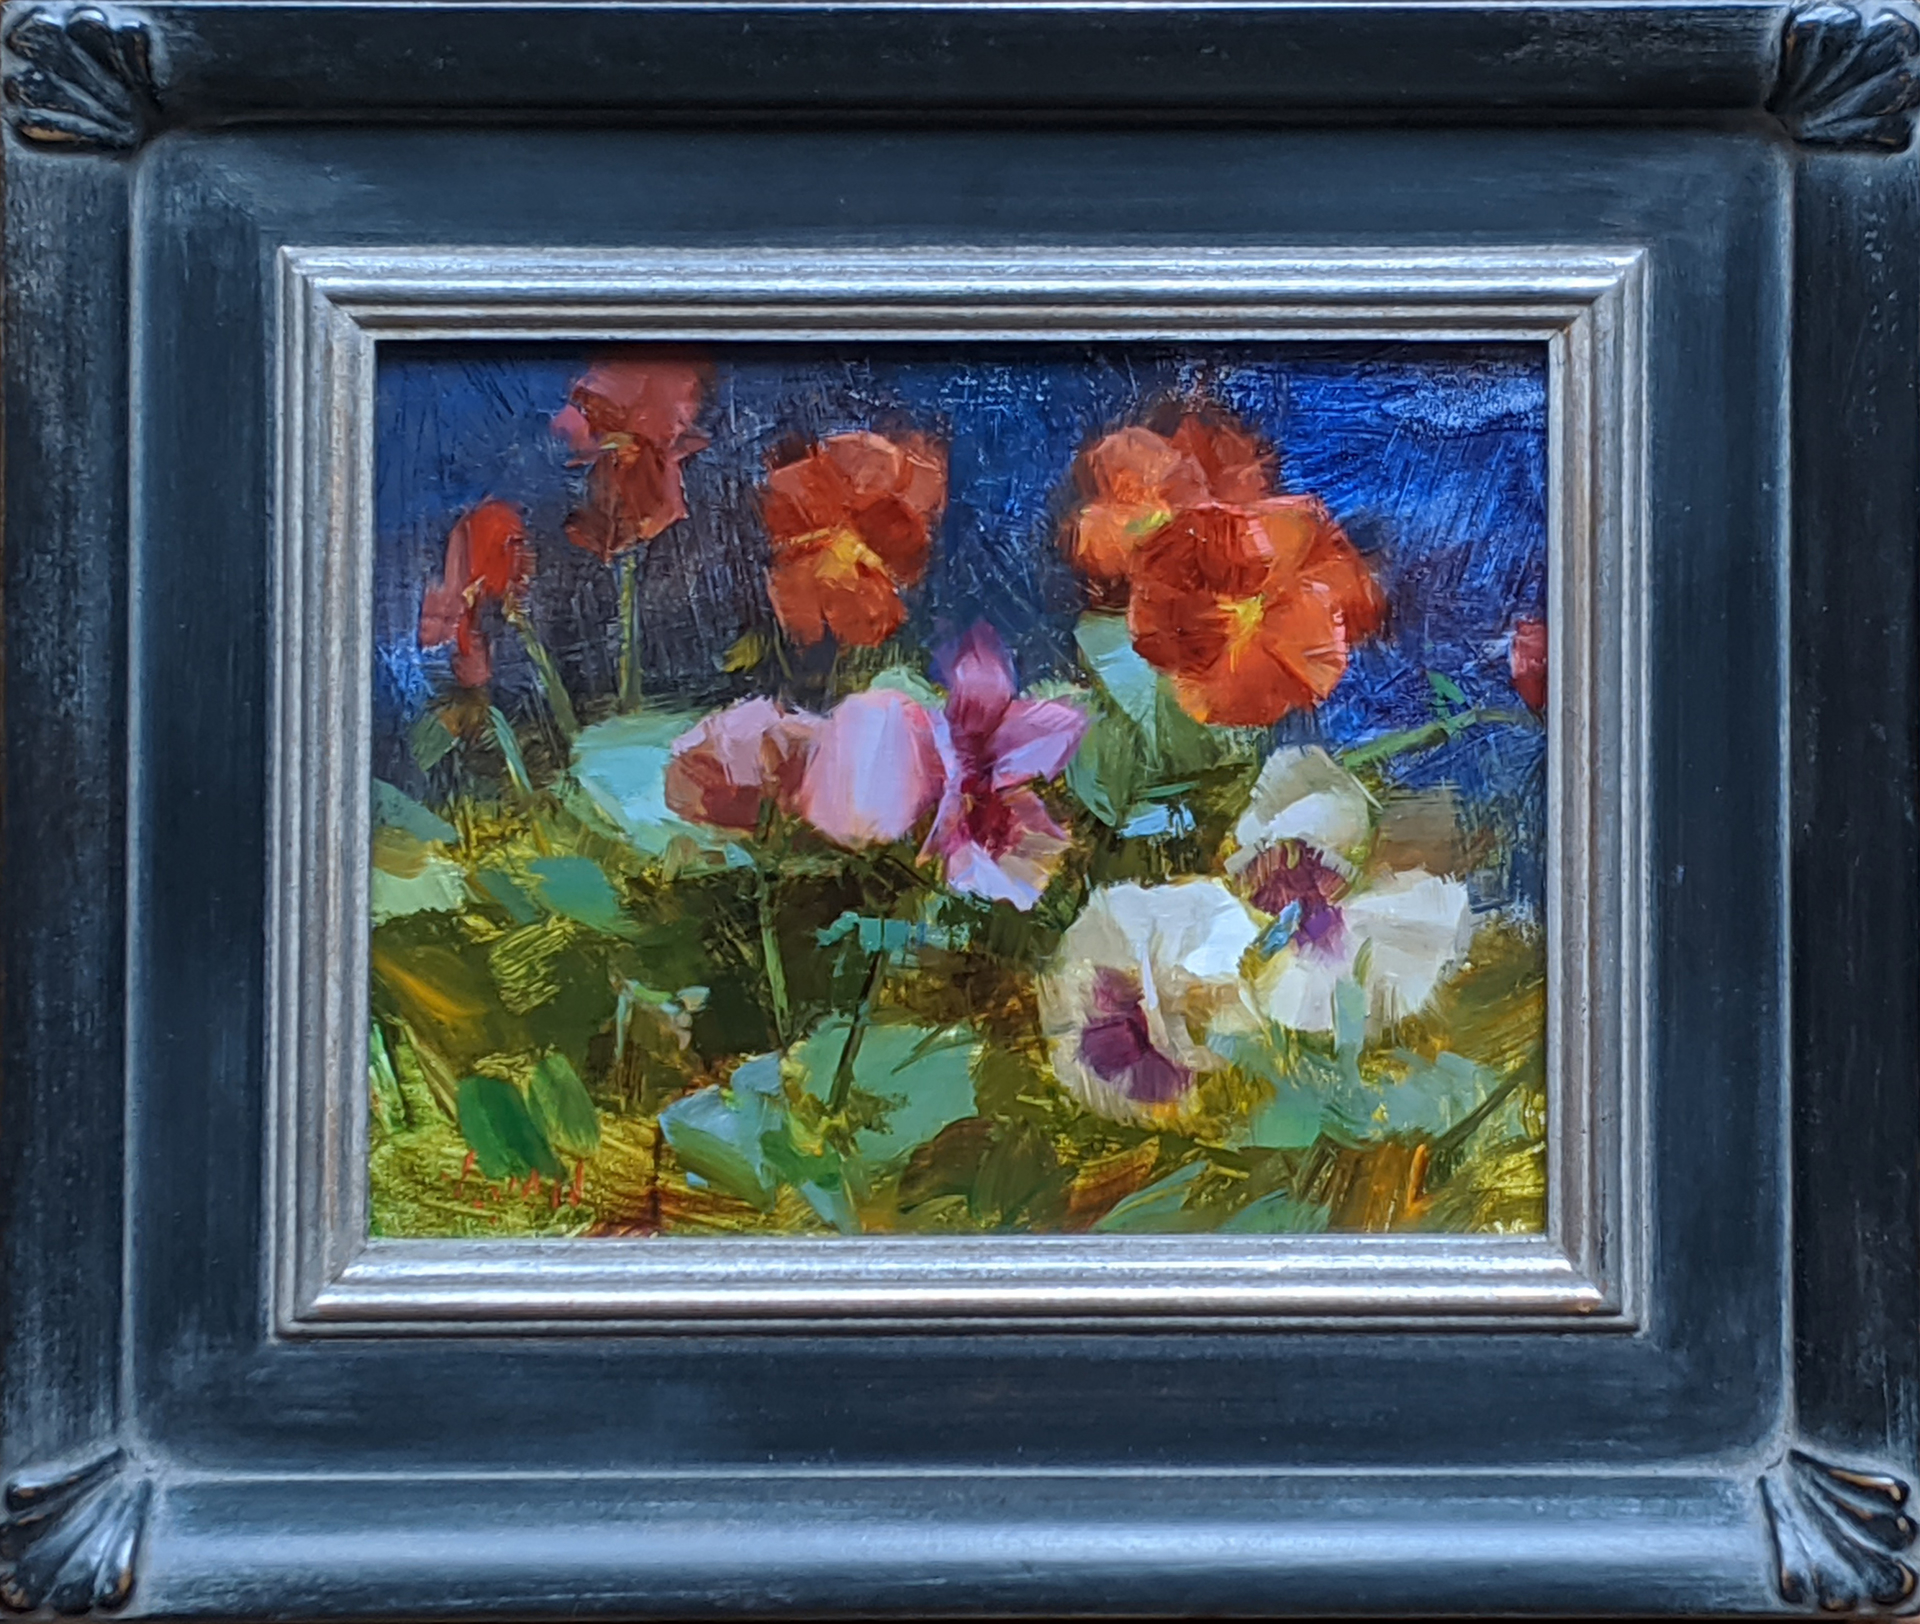 Pansies with Blue Background by Susan Lyon